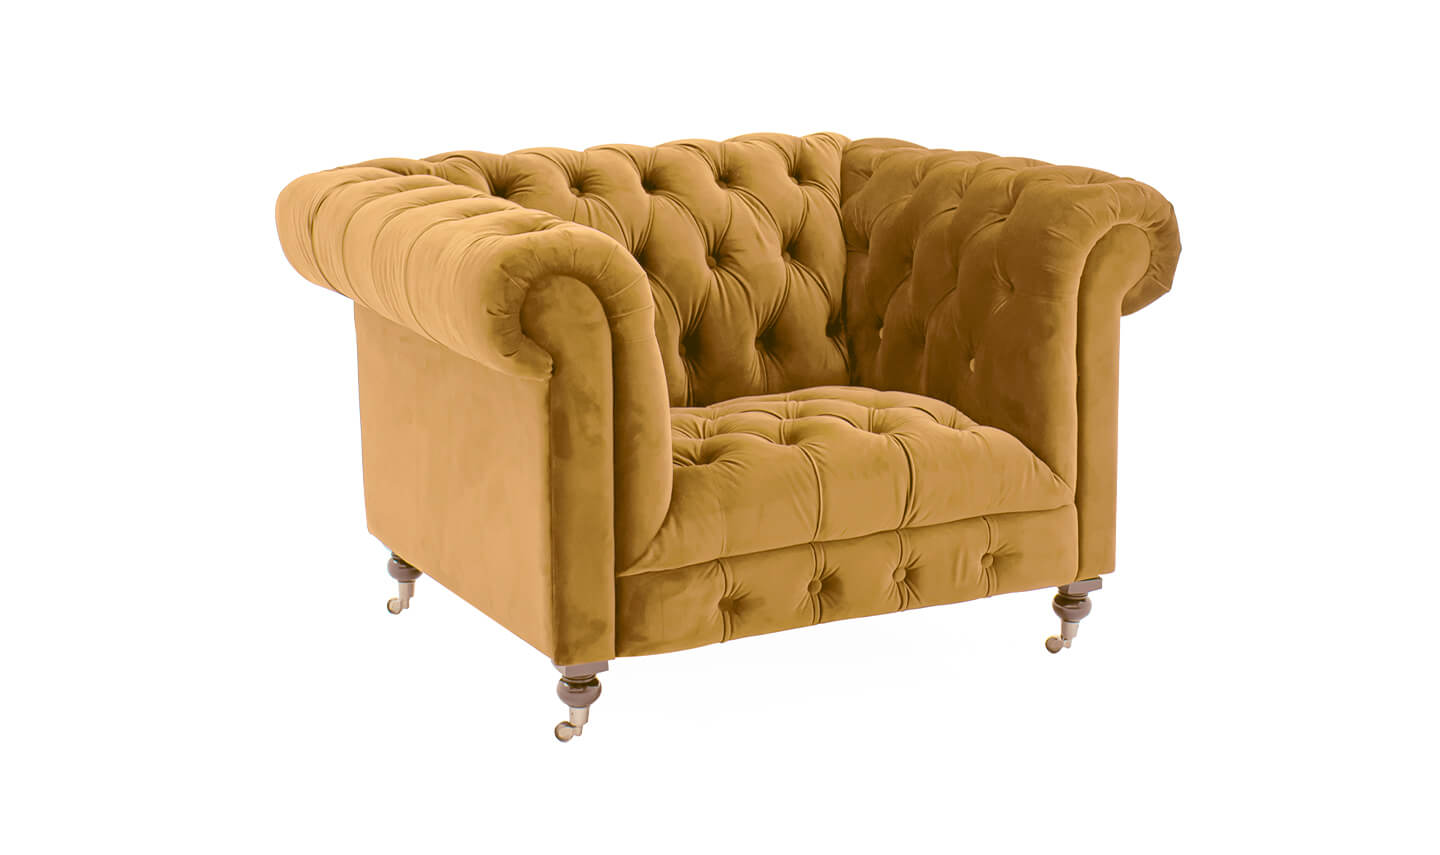 Darby 1 Seater Mustard